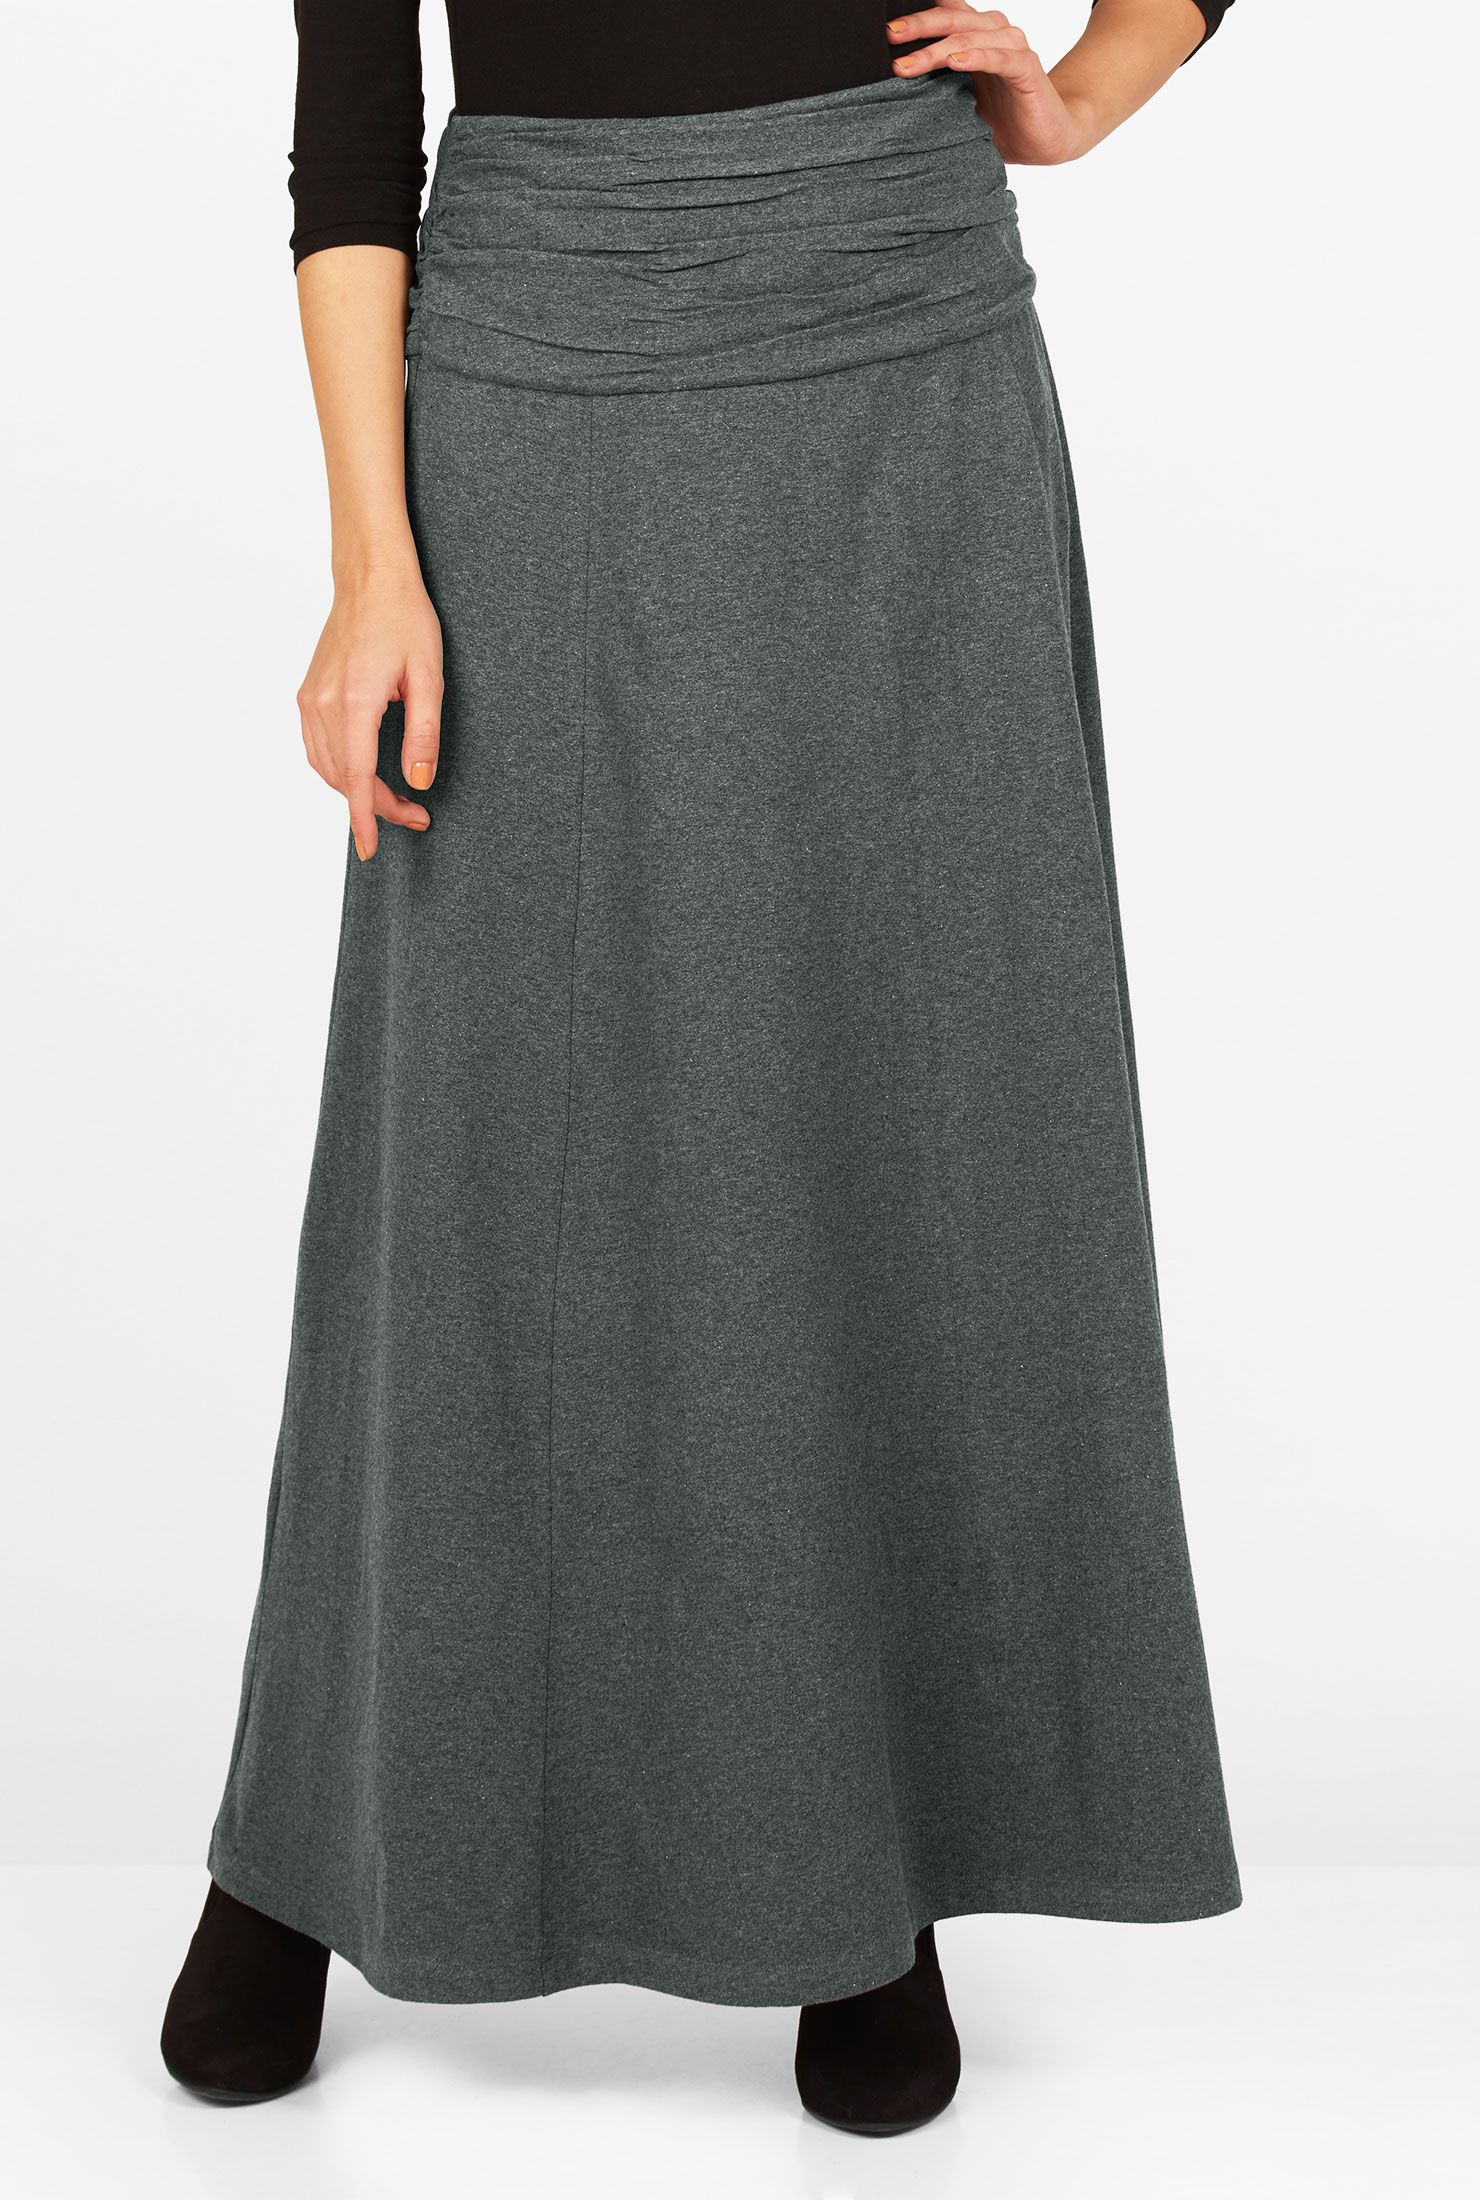 To acquire How to jersey a wear knit skirt picture trends